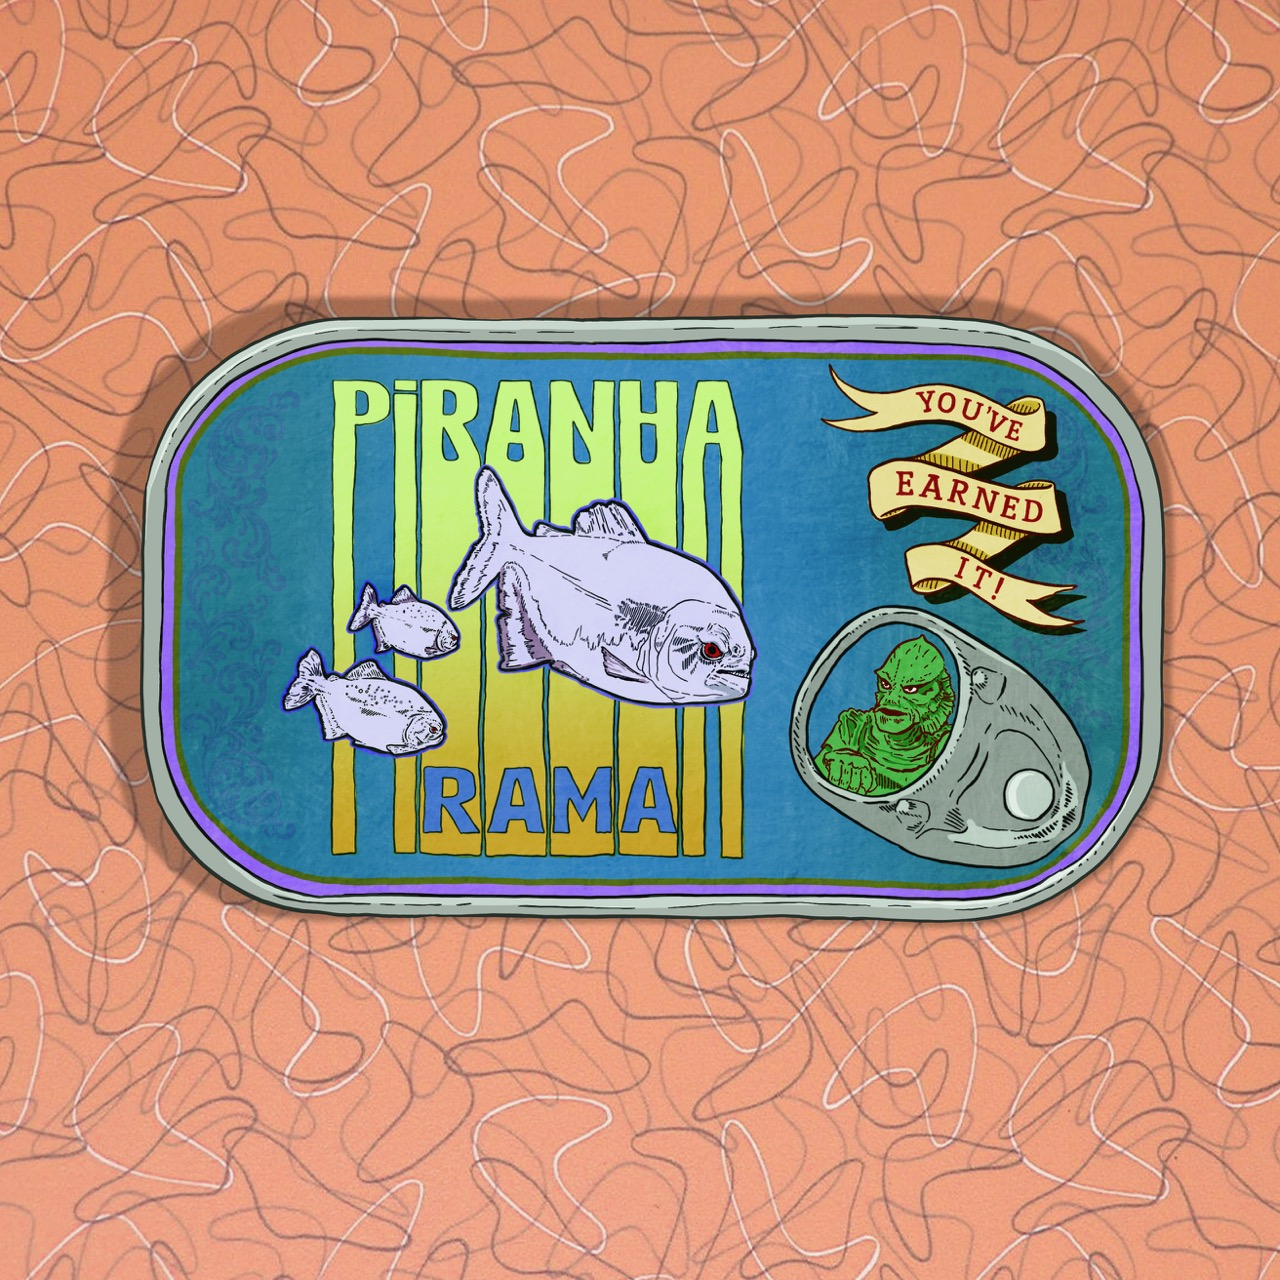 Piranha_Rama_Can 2d